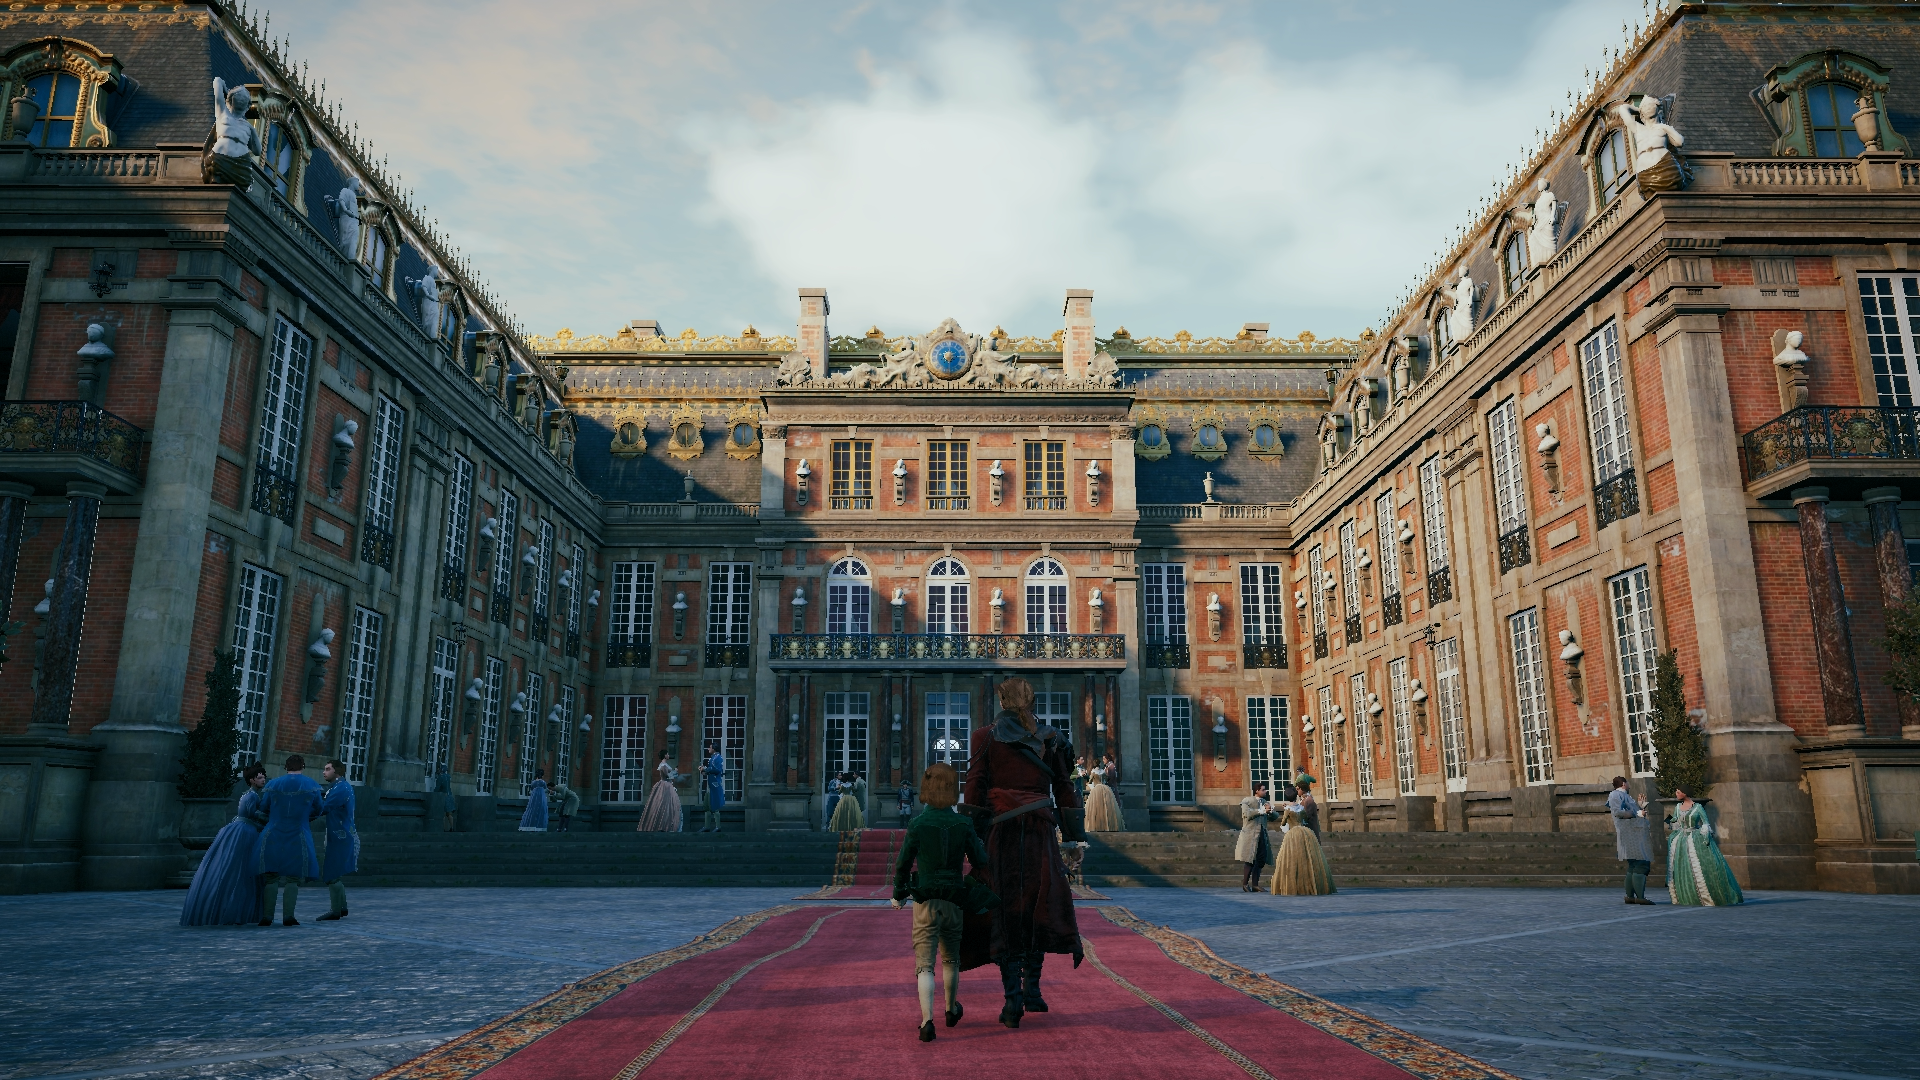 palace of versailles assassin 39 s creed wiki fandom powered by wikia. Black Bedroom Furniture Sets. Home Design Ideas